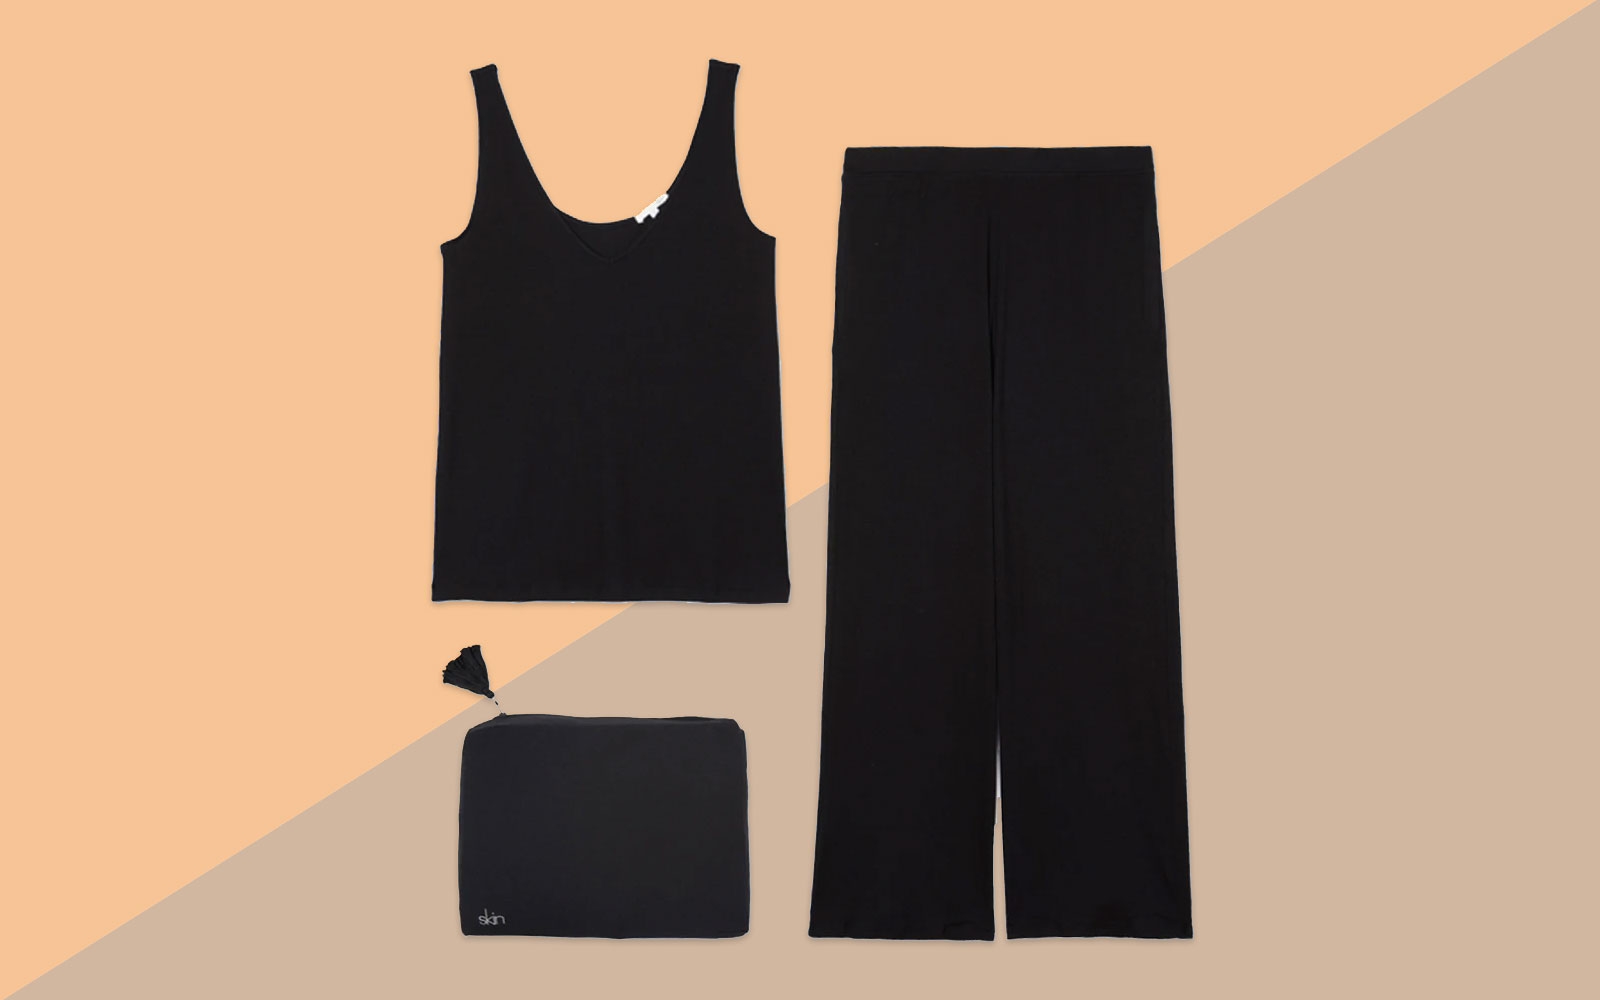 Black Pajama Tank, Pants, and Pouch